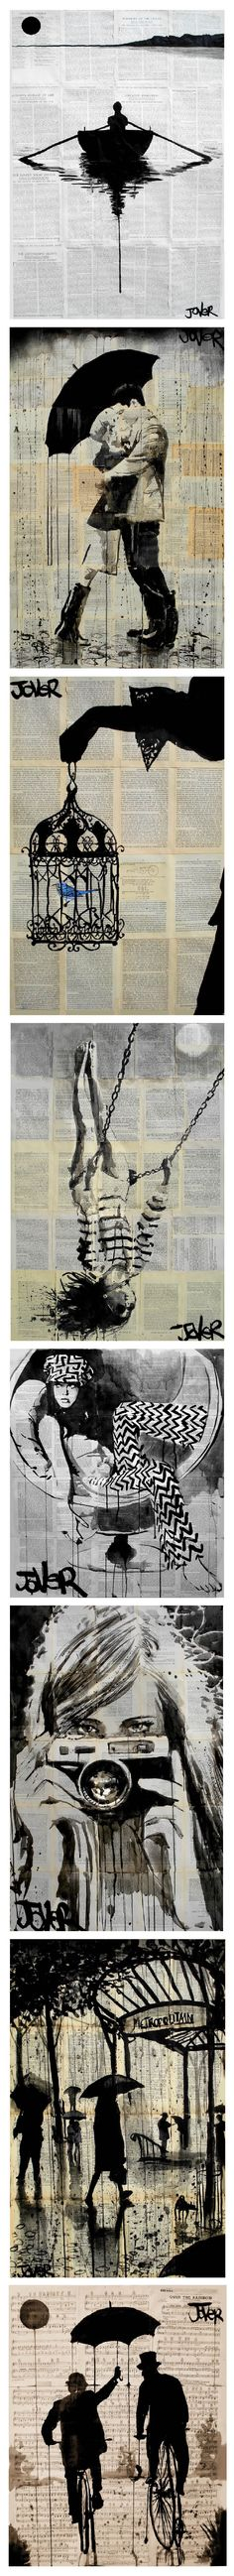 Art by Loui Jover - In Saatchi Online